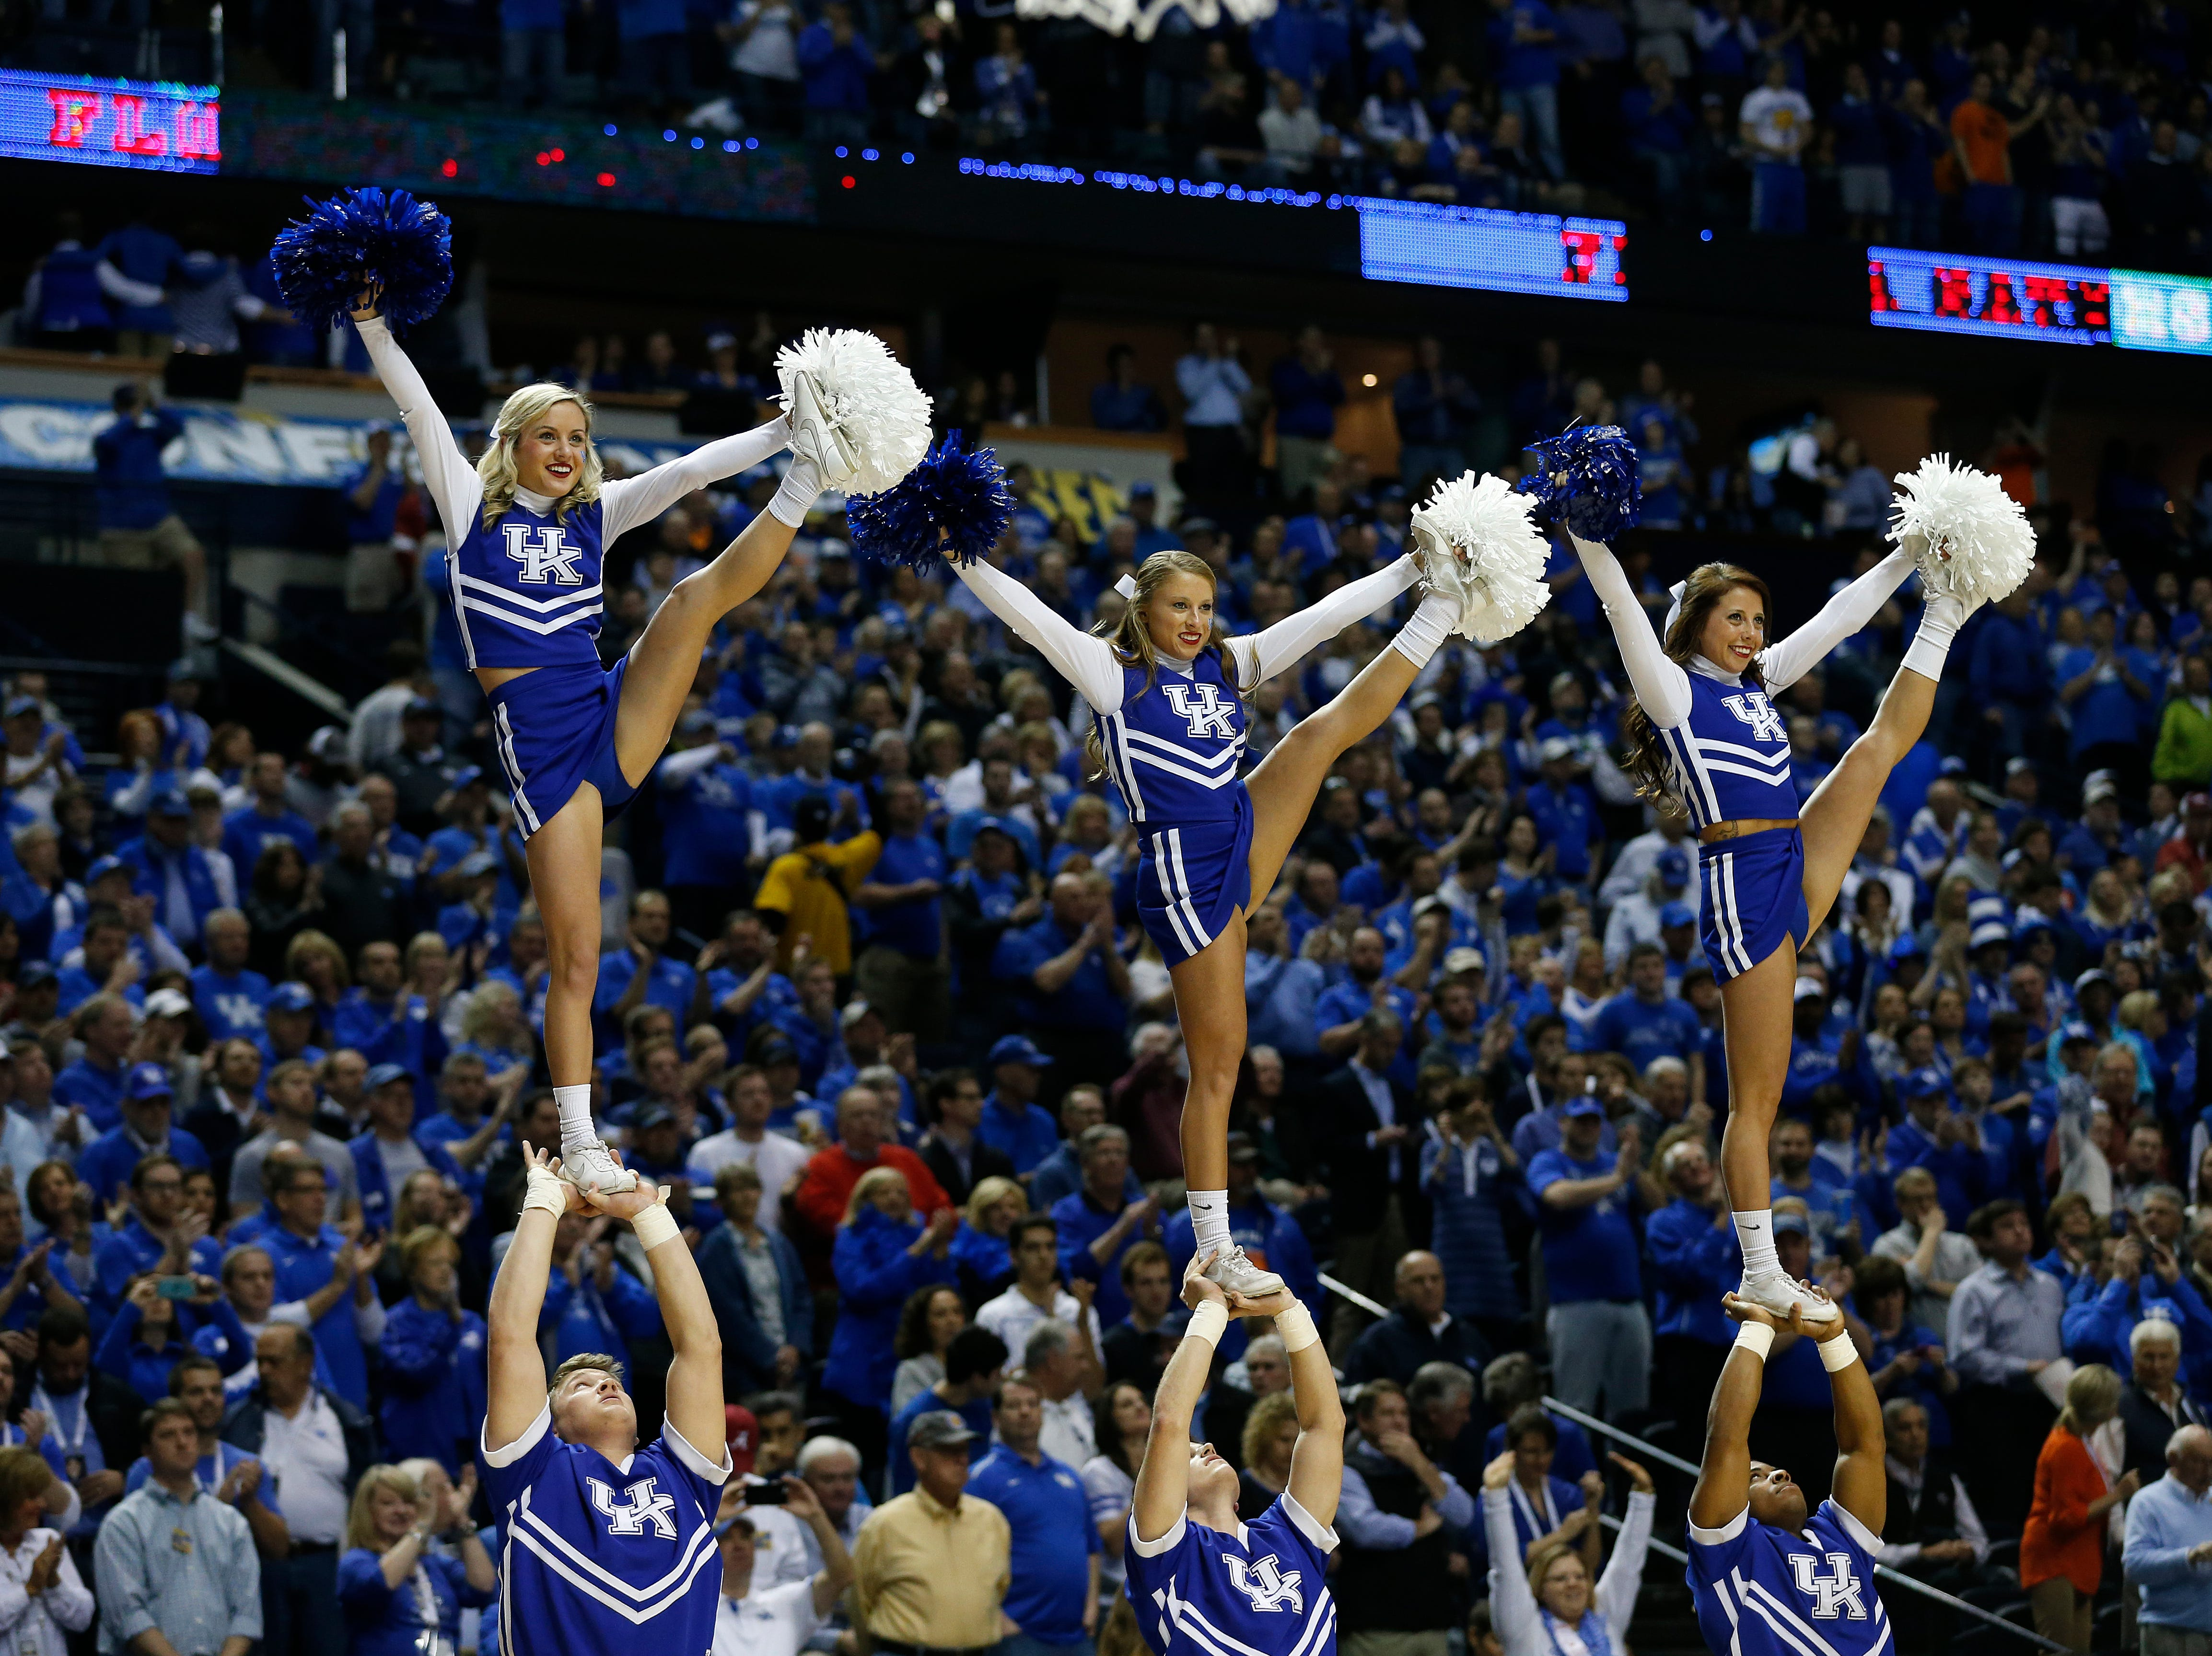 Kentucky cheerleaders perform during the first half of an NCAA college basketball game in the quarter final round of the Southeastern Conference tournament between Kentucky and Florida, Friday, March 13, 2015, in Nashville, Tenn. (AP Photo/Steve Helber)